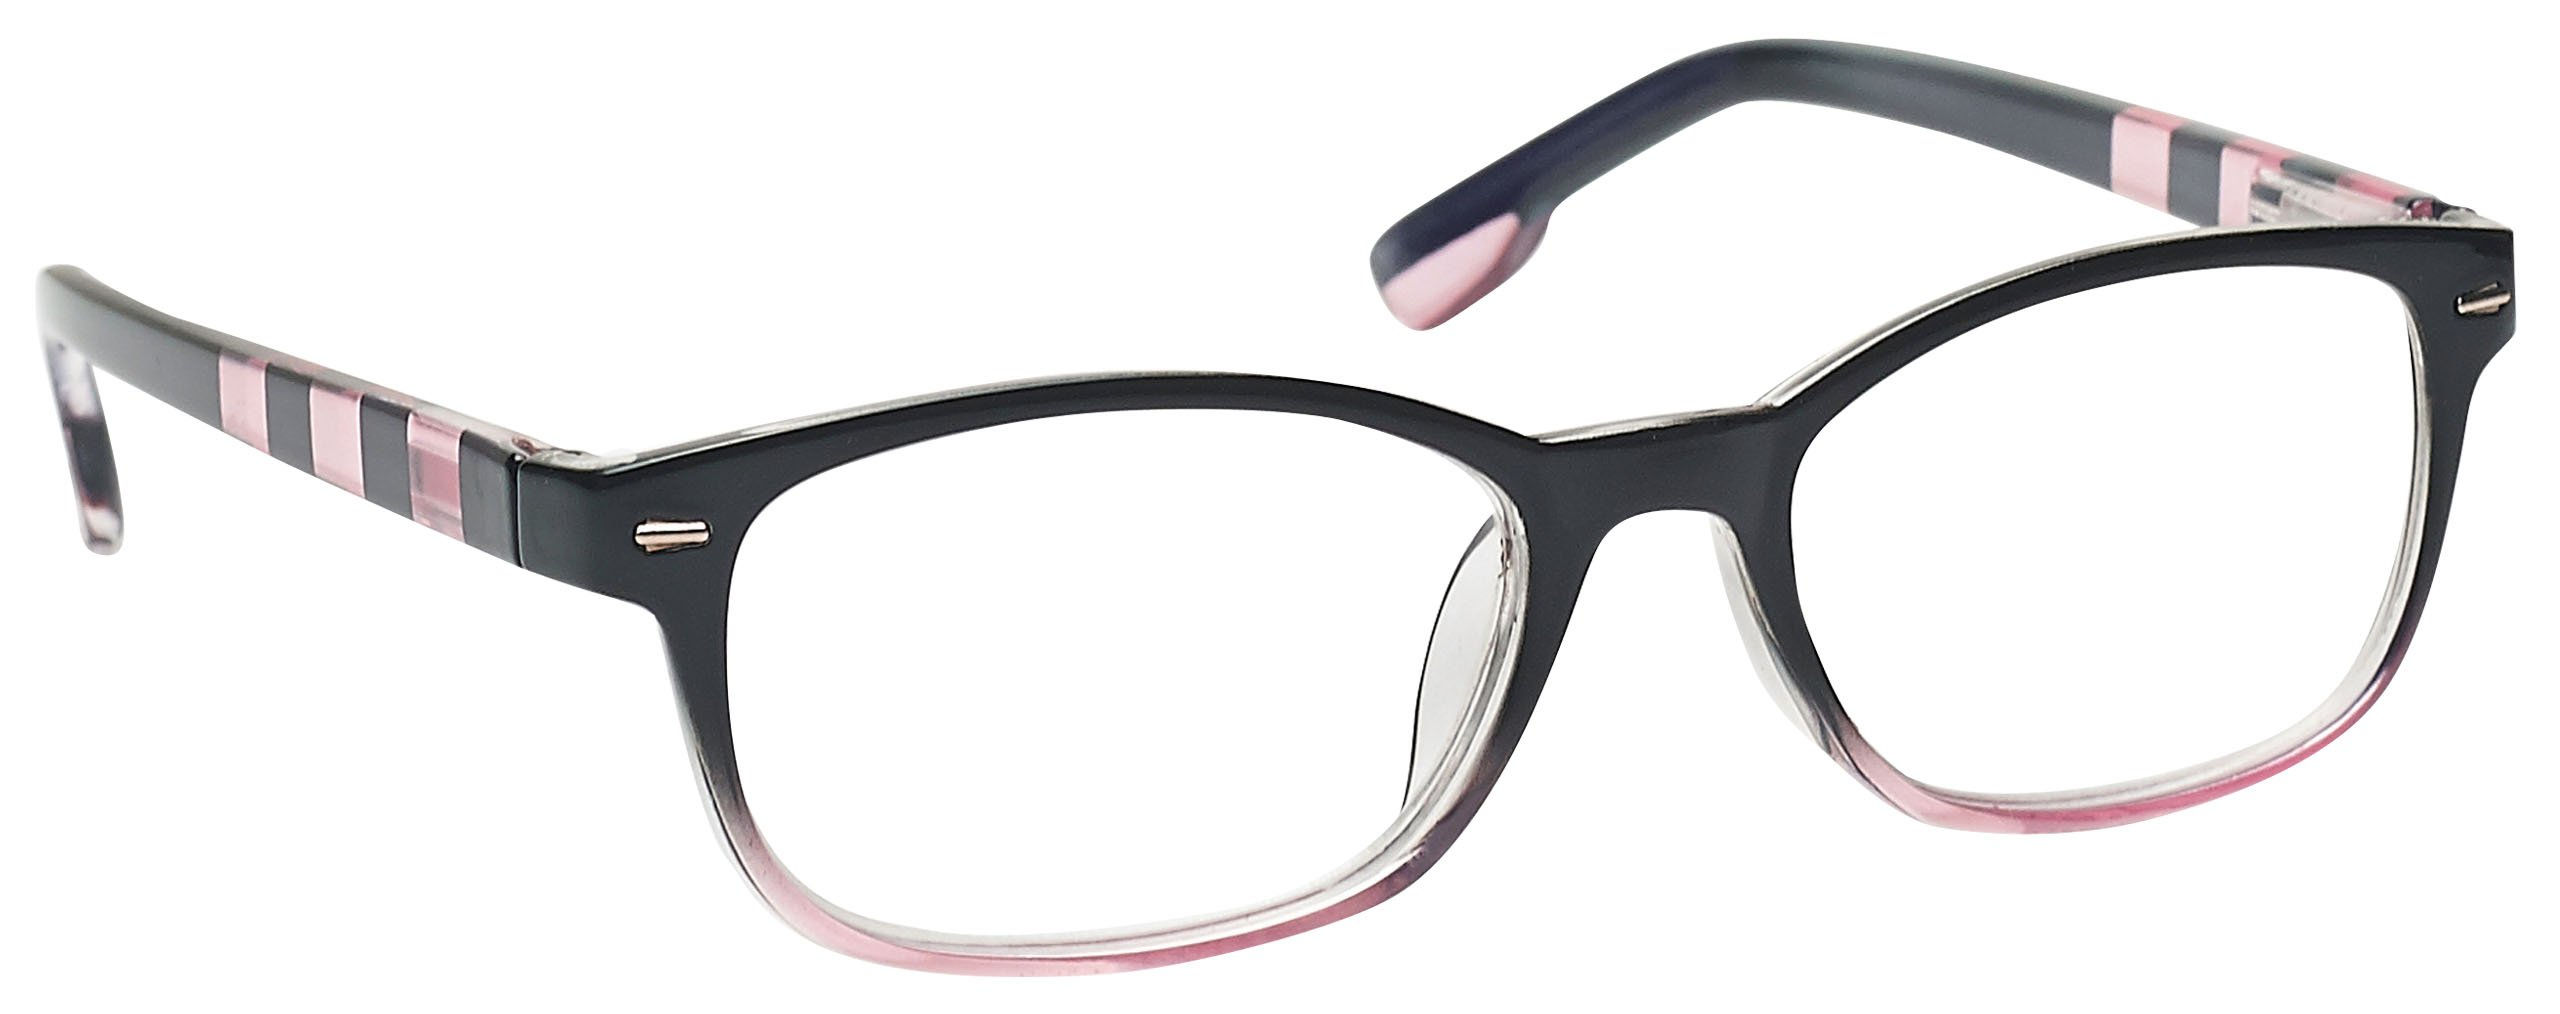 The Reading Glasses Company Black Soft Pink Stripe Readers Womens Ladies R40-4 +1.00